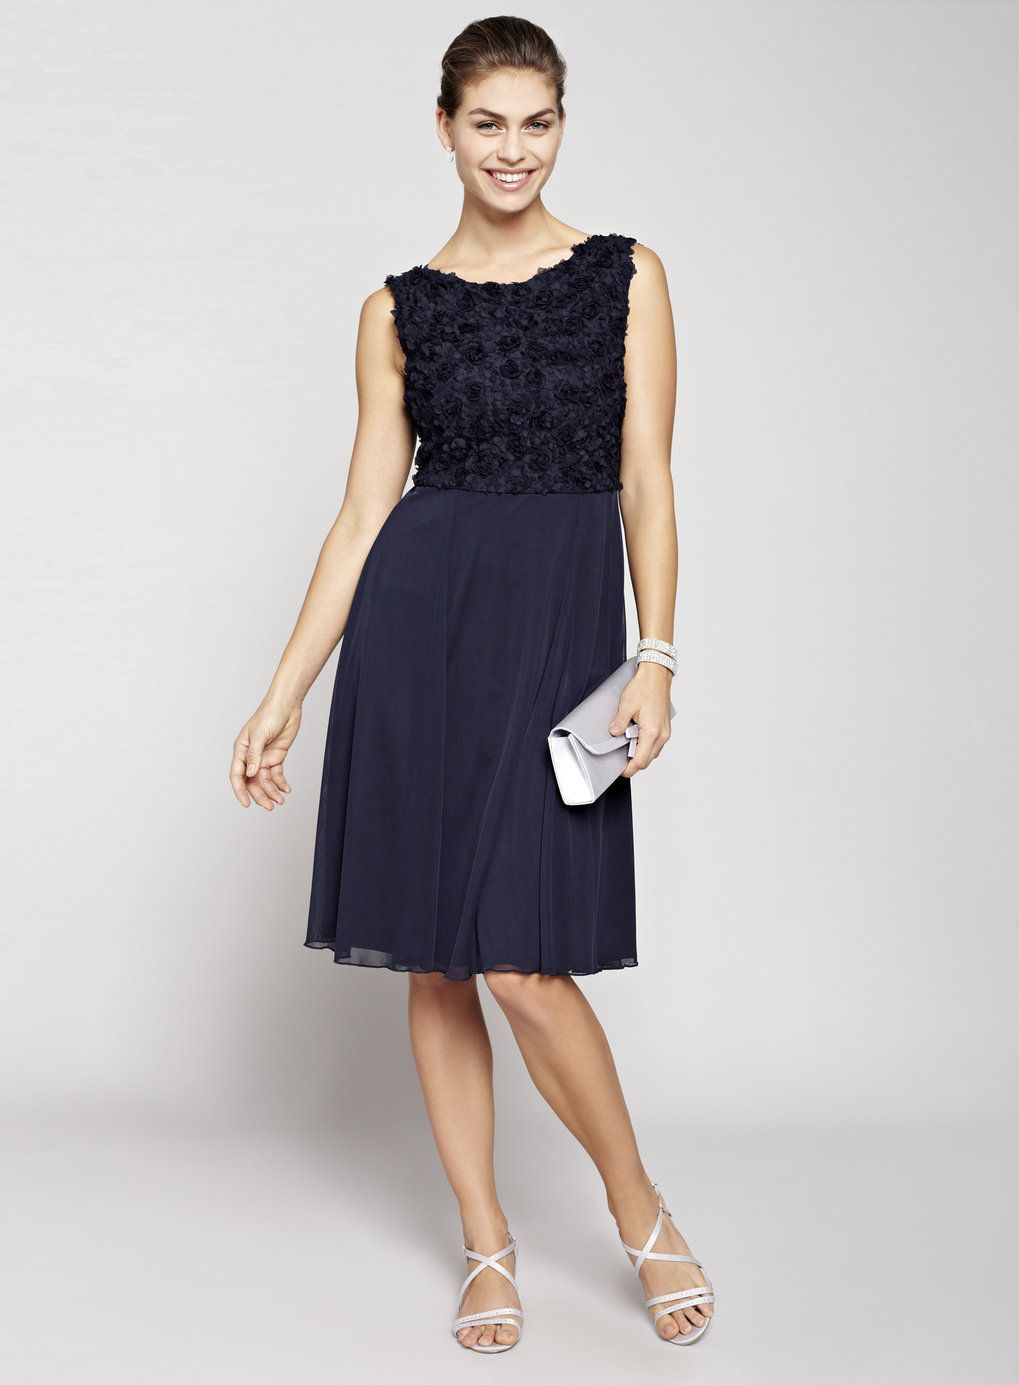 The beautiful navy blue bridesmaid dresses bhs rosie short navy bridesmaid dress size 14 bnwt in clothes shoes accessories wedding formal occasion bridesmaids formal dresses ombrellifo Image collections